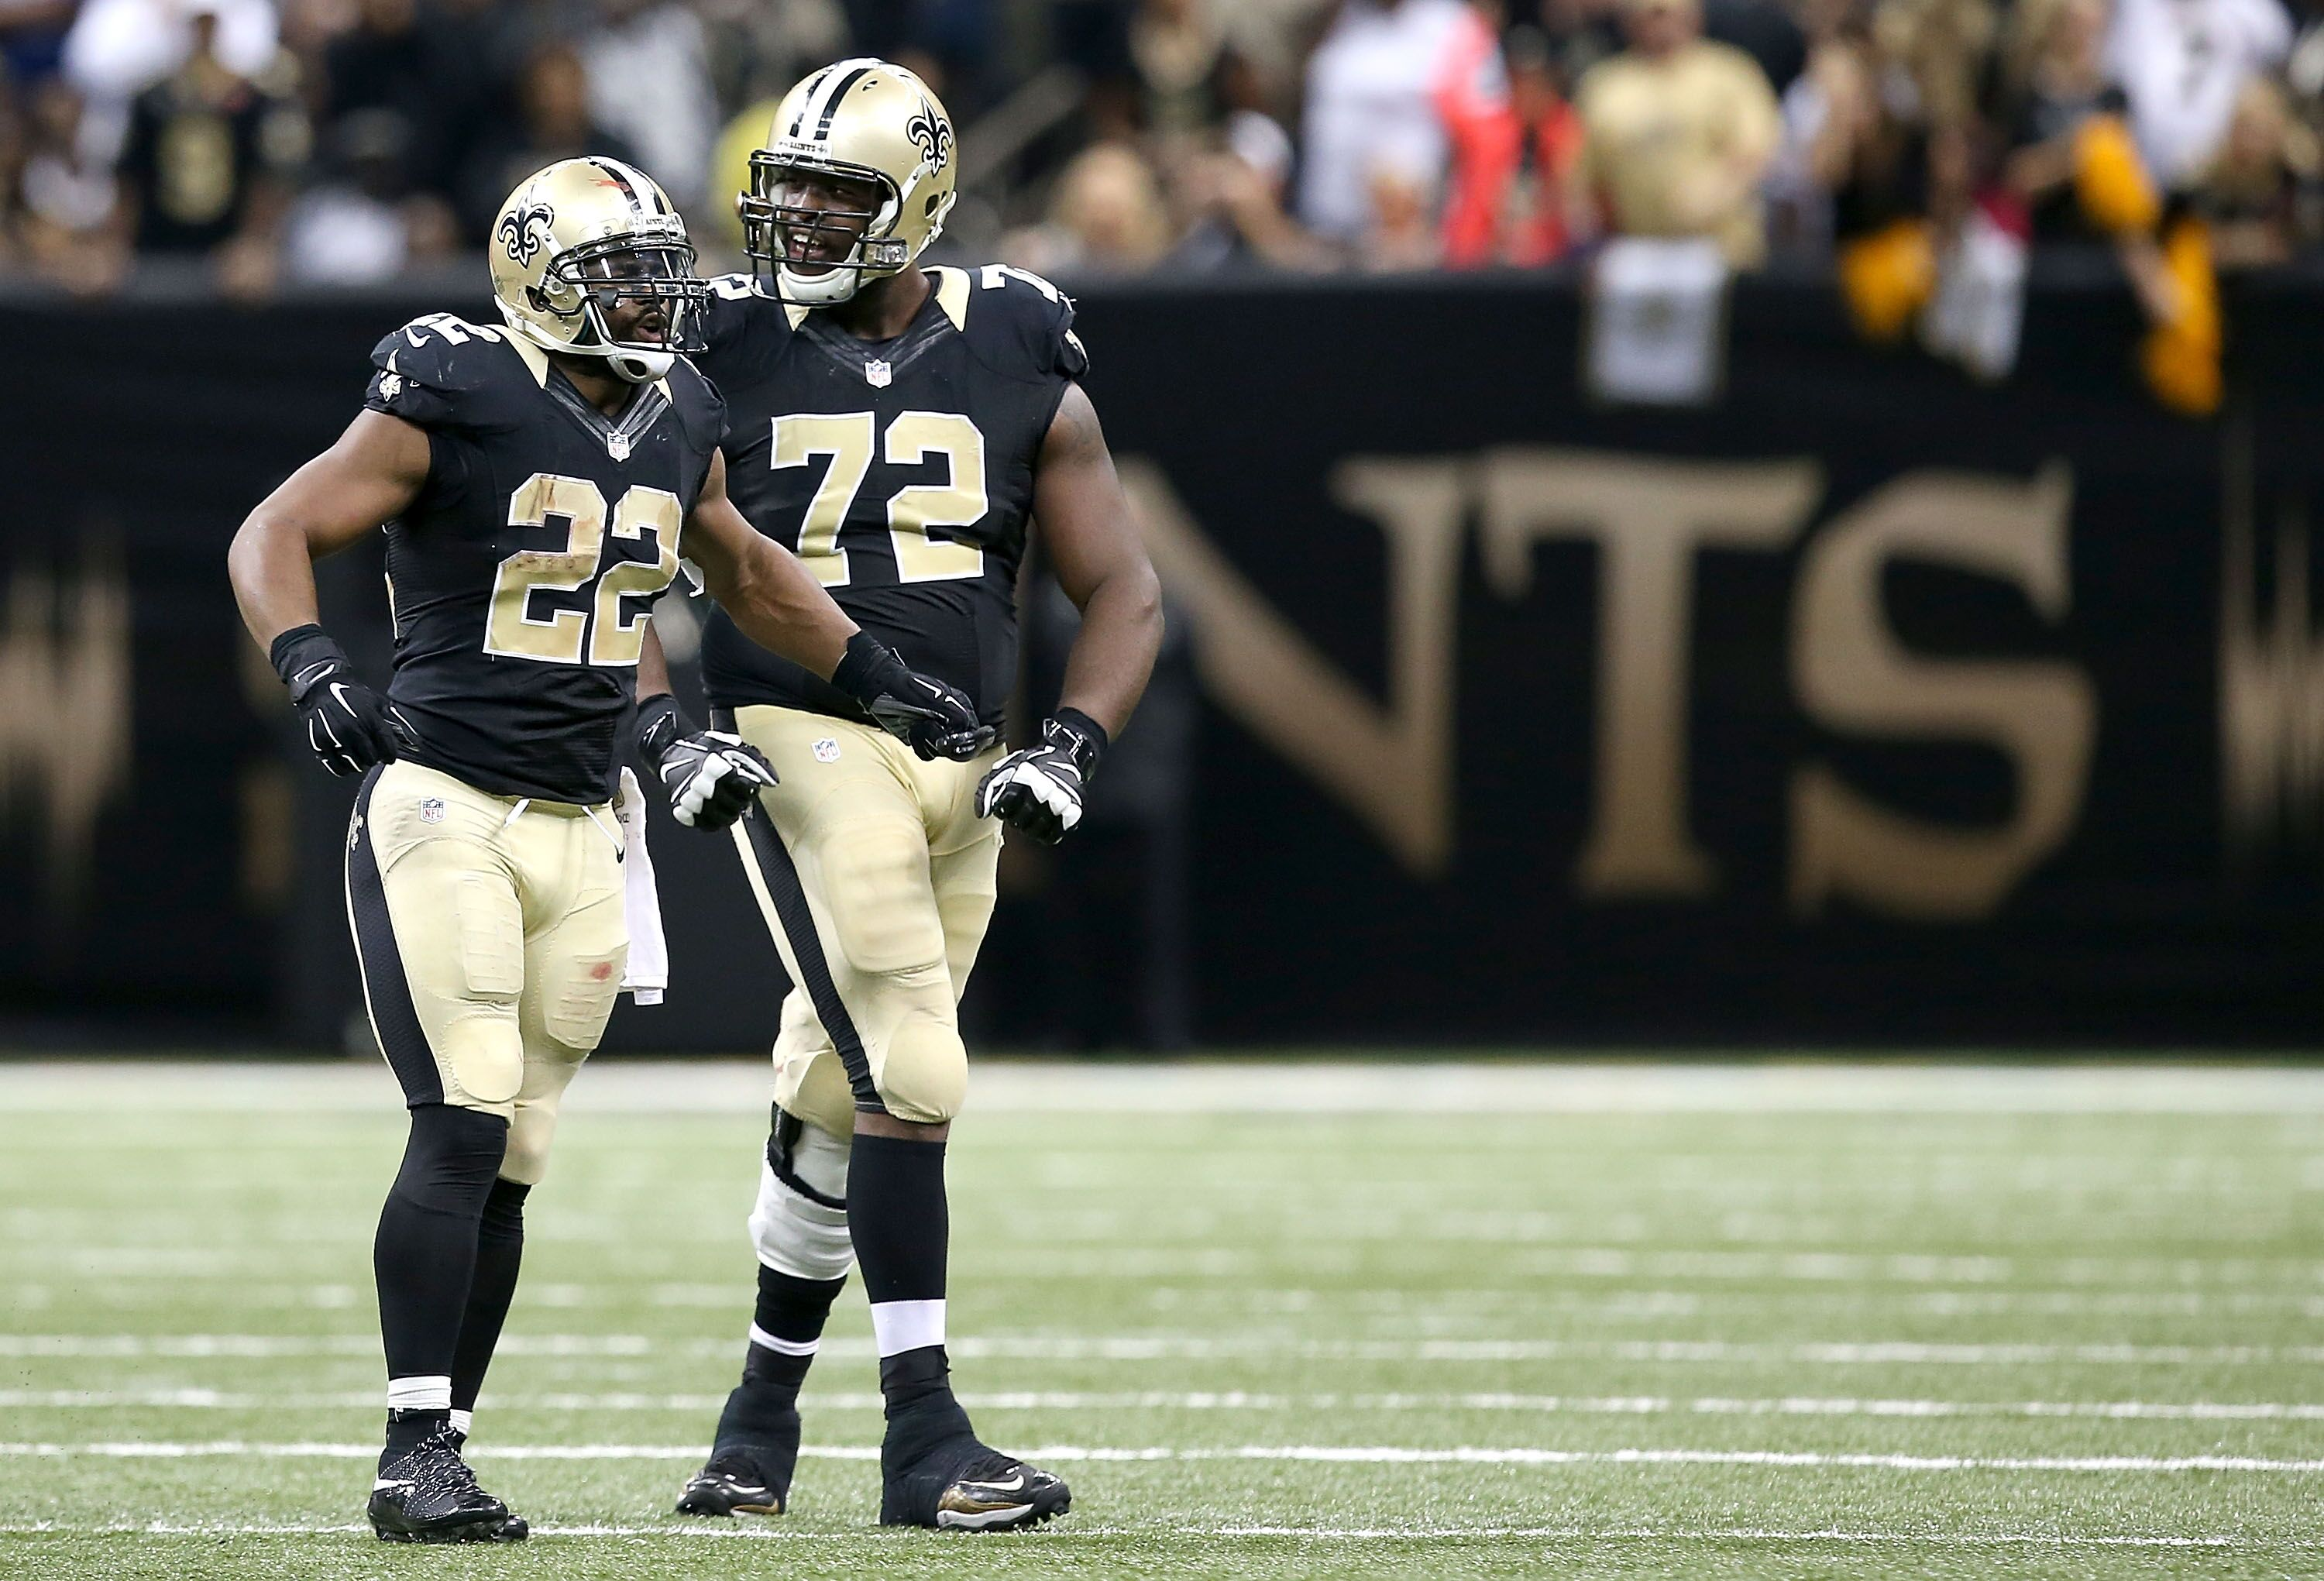 495609240-new-york-giants-v-new-orleans-saints.jpg